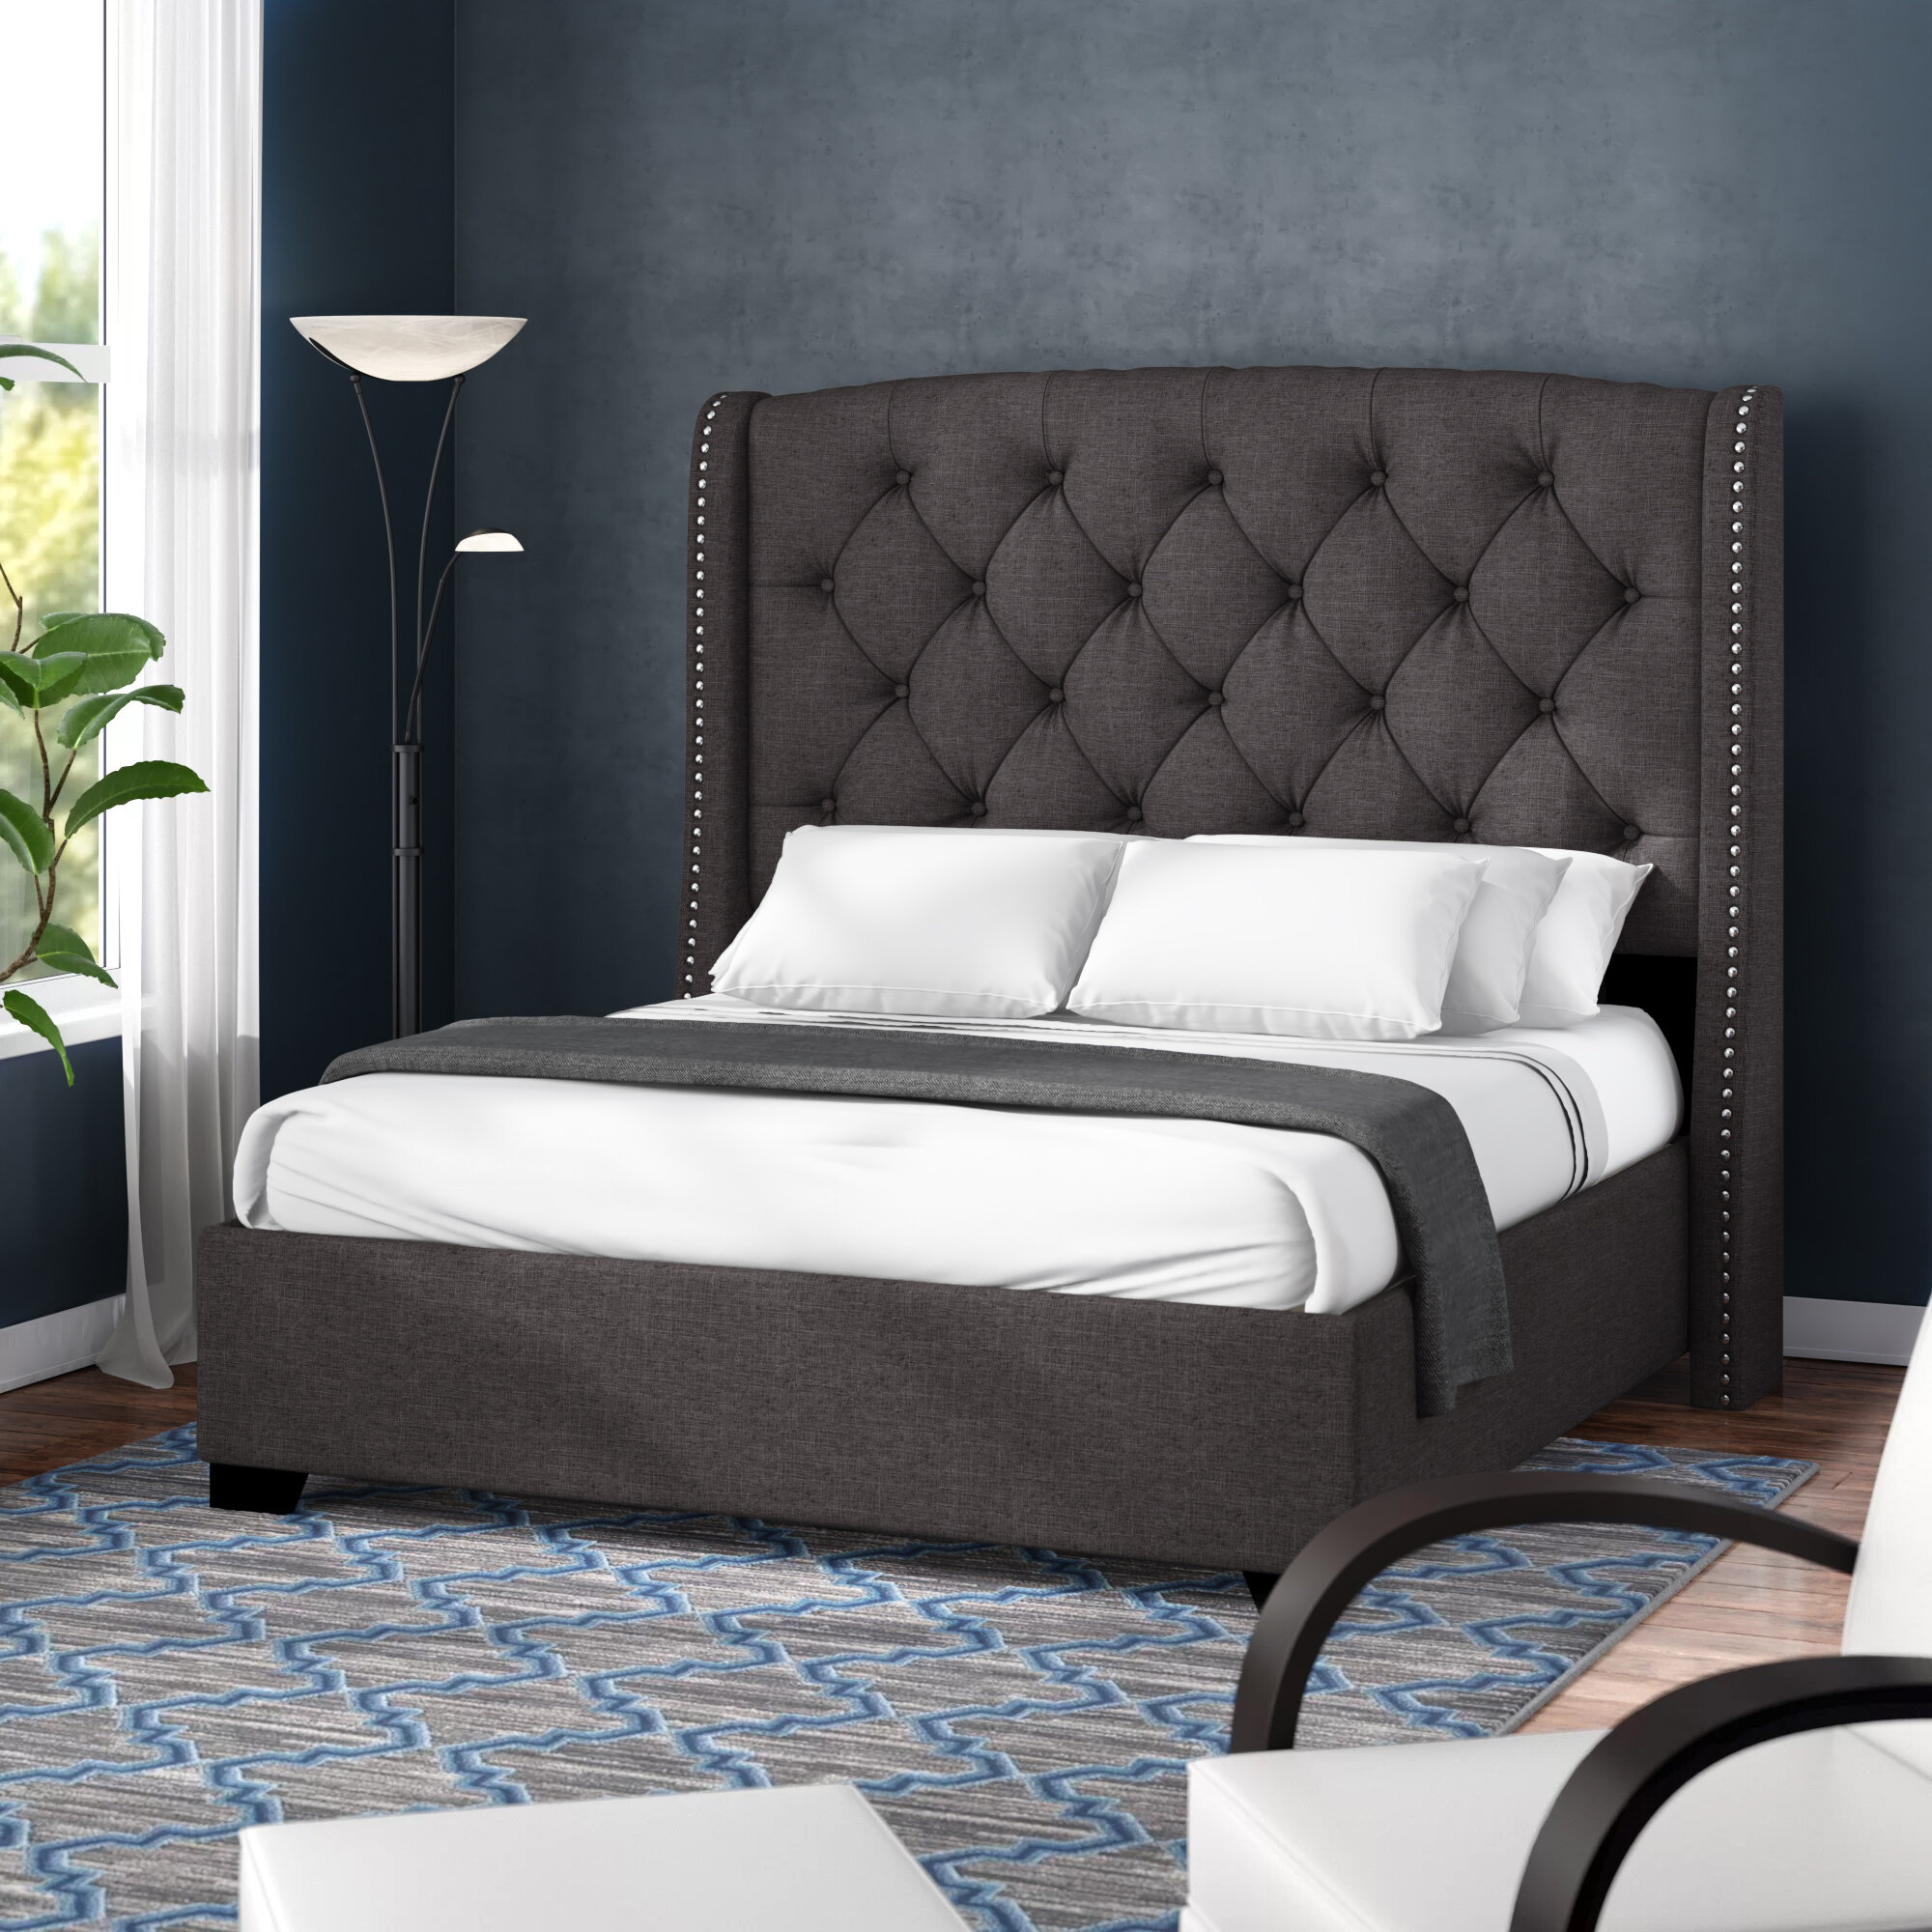 Darby Home Co Chenery Upholstered Platform Bed Reviews Wayfair